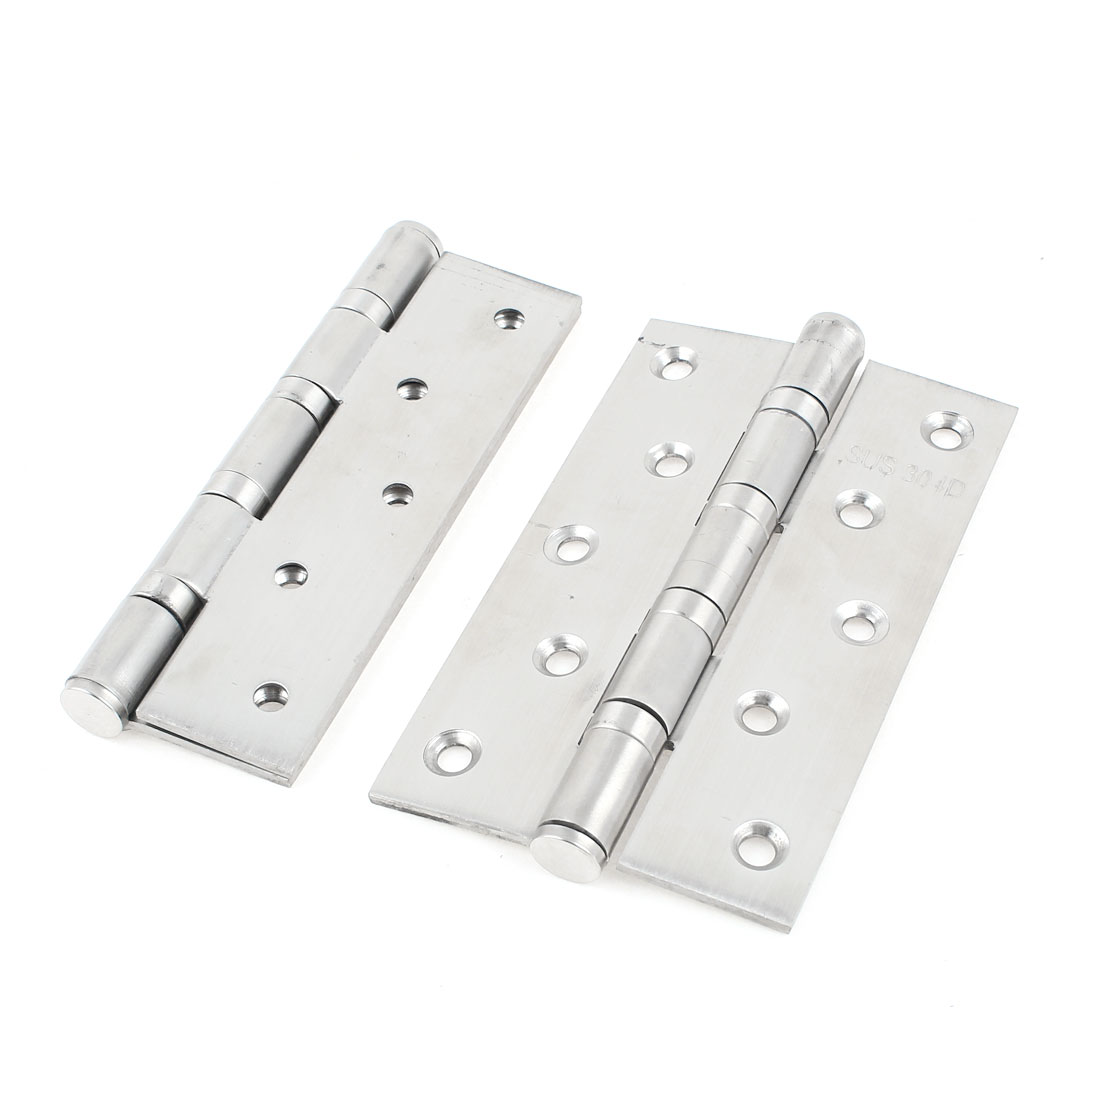 "5"" Silver Tone Folding Cupboard Cabinet Door Hinge Hardware 2 Pcs"